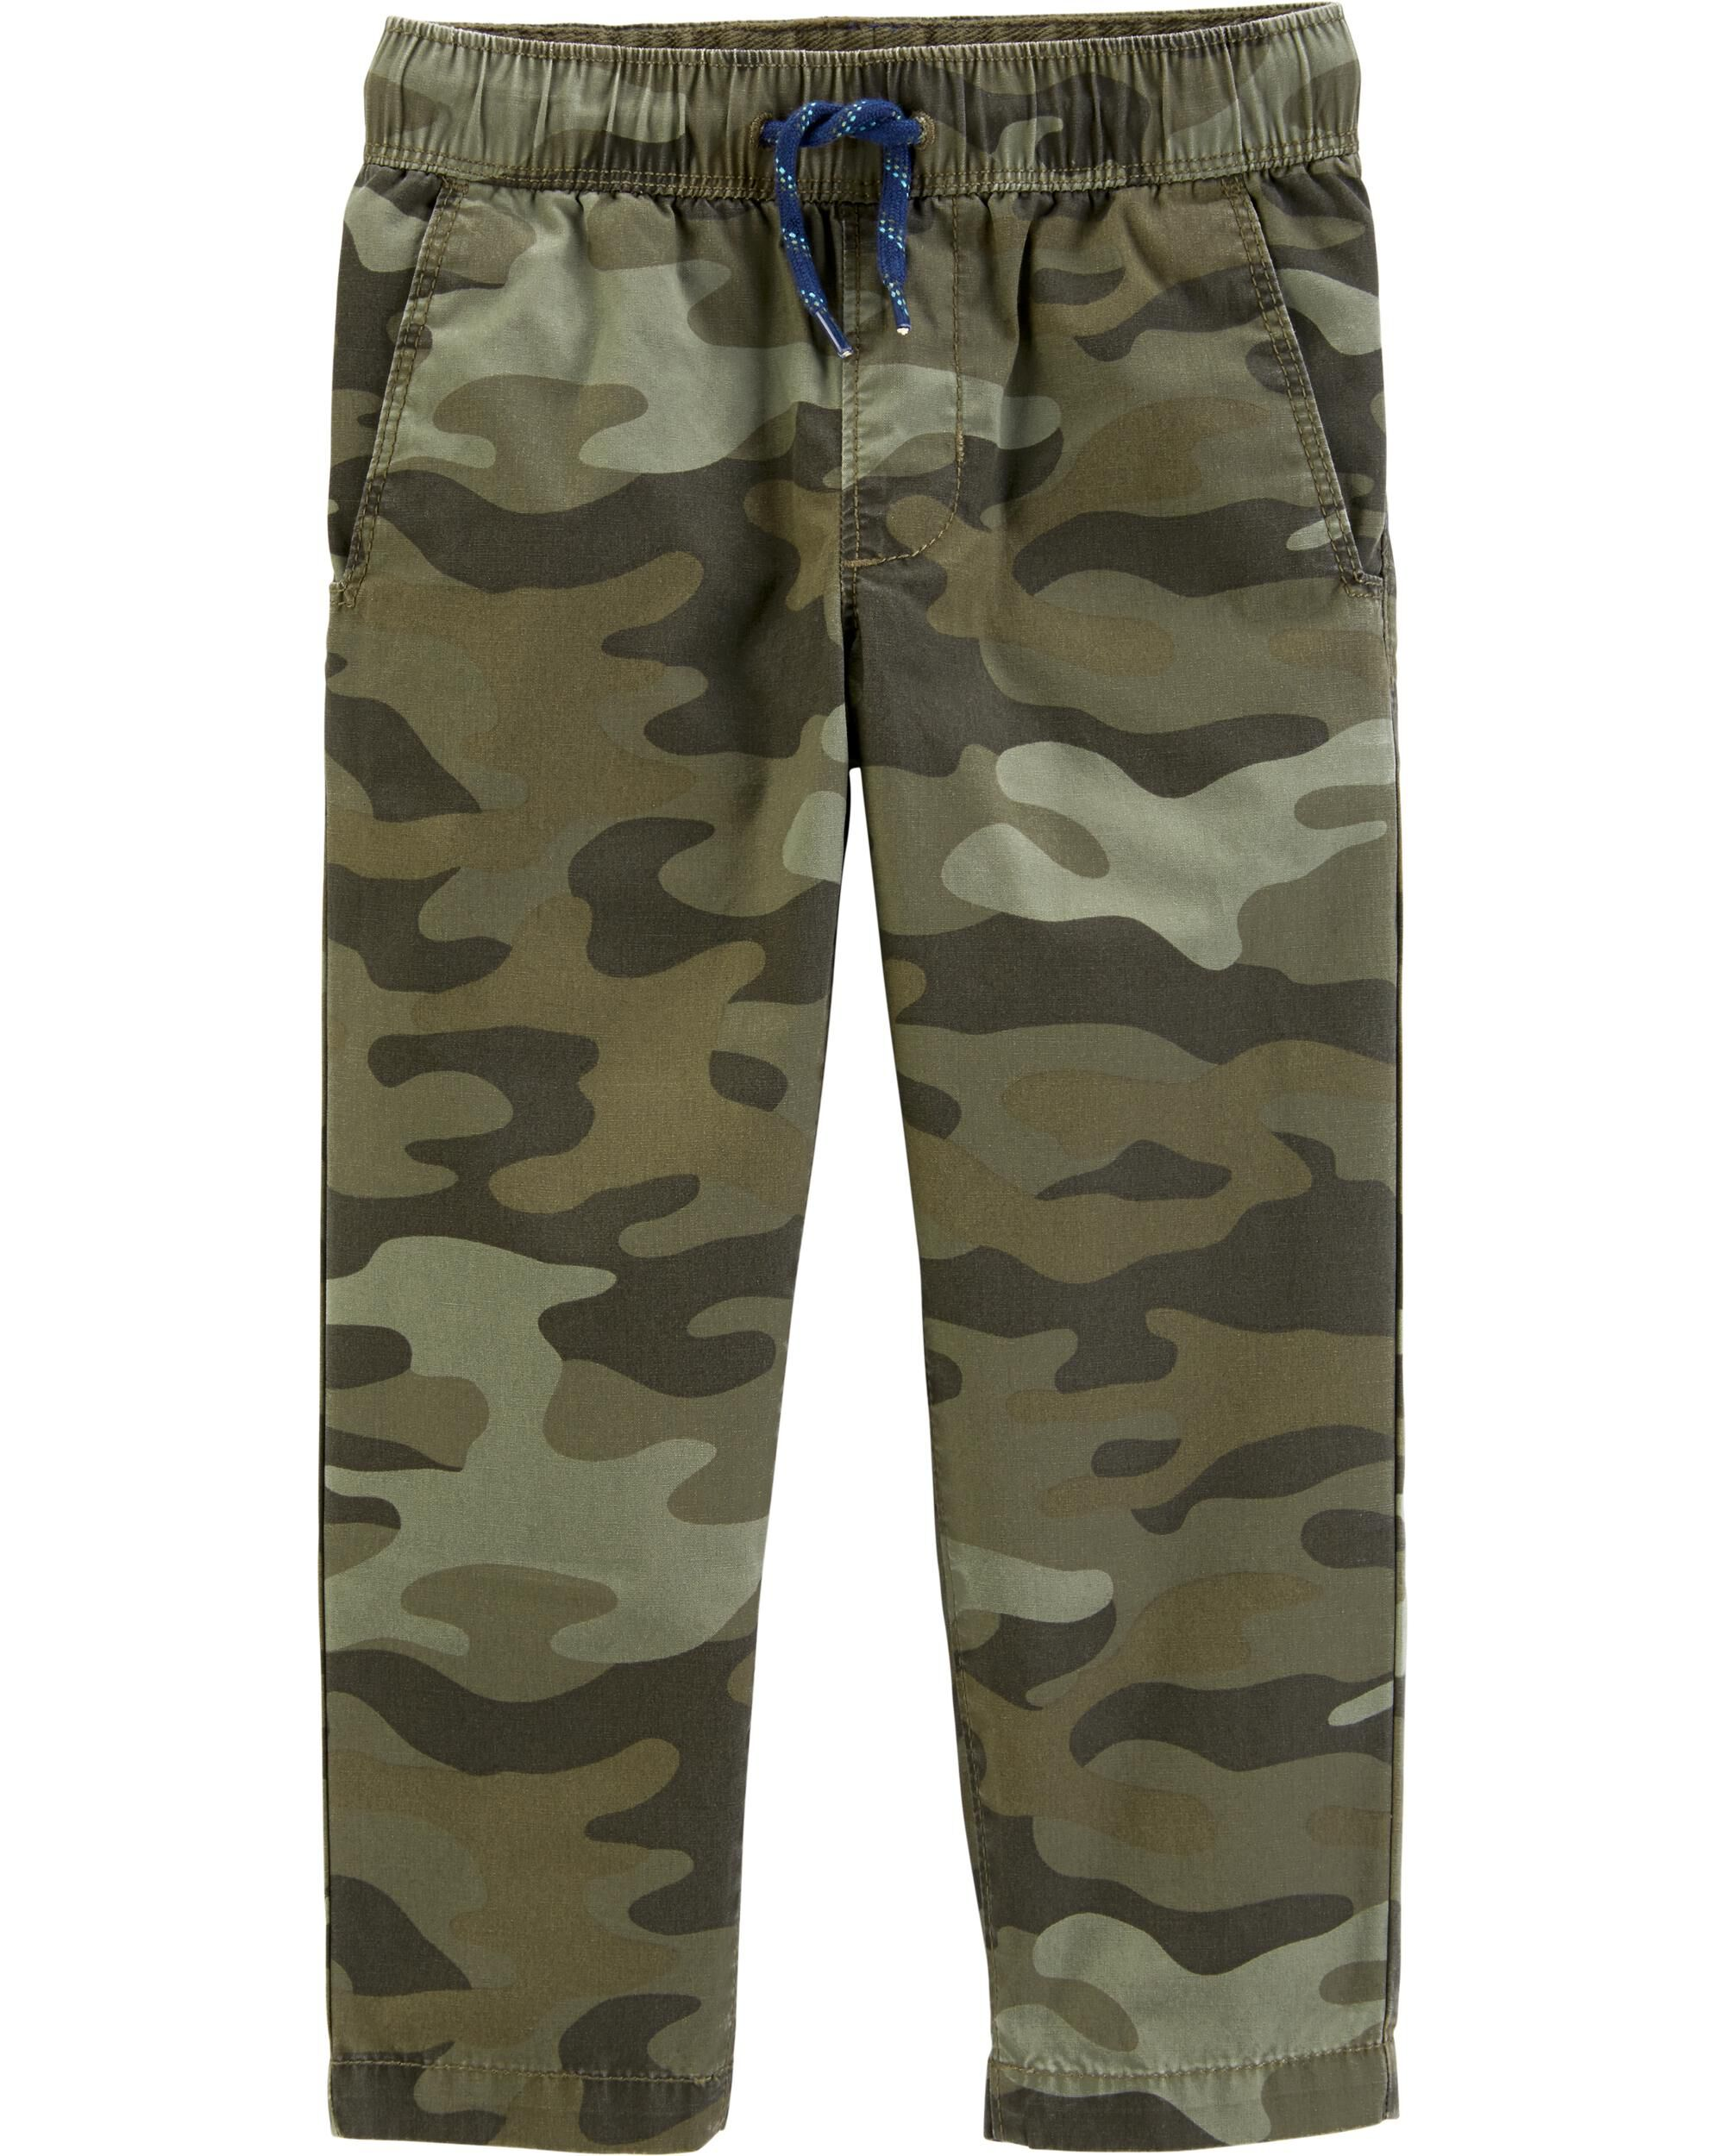 18 Months 100/% Cotton Carter/'s Baby Boy Green Camo Sweat Pants Sizes 12